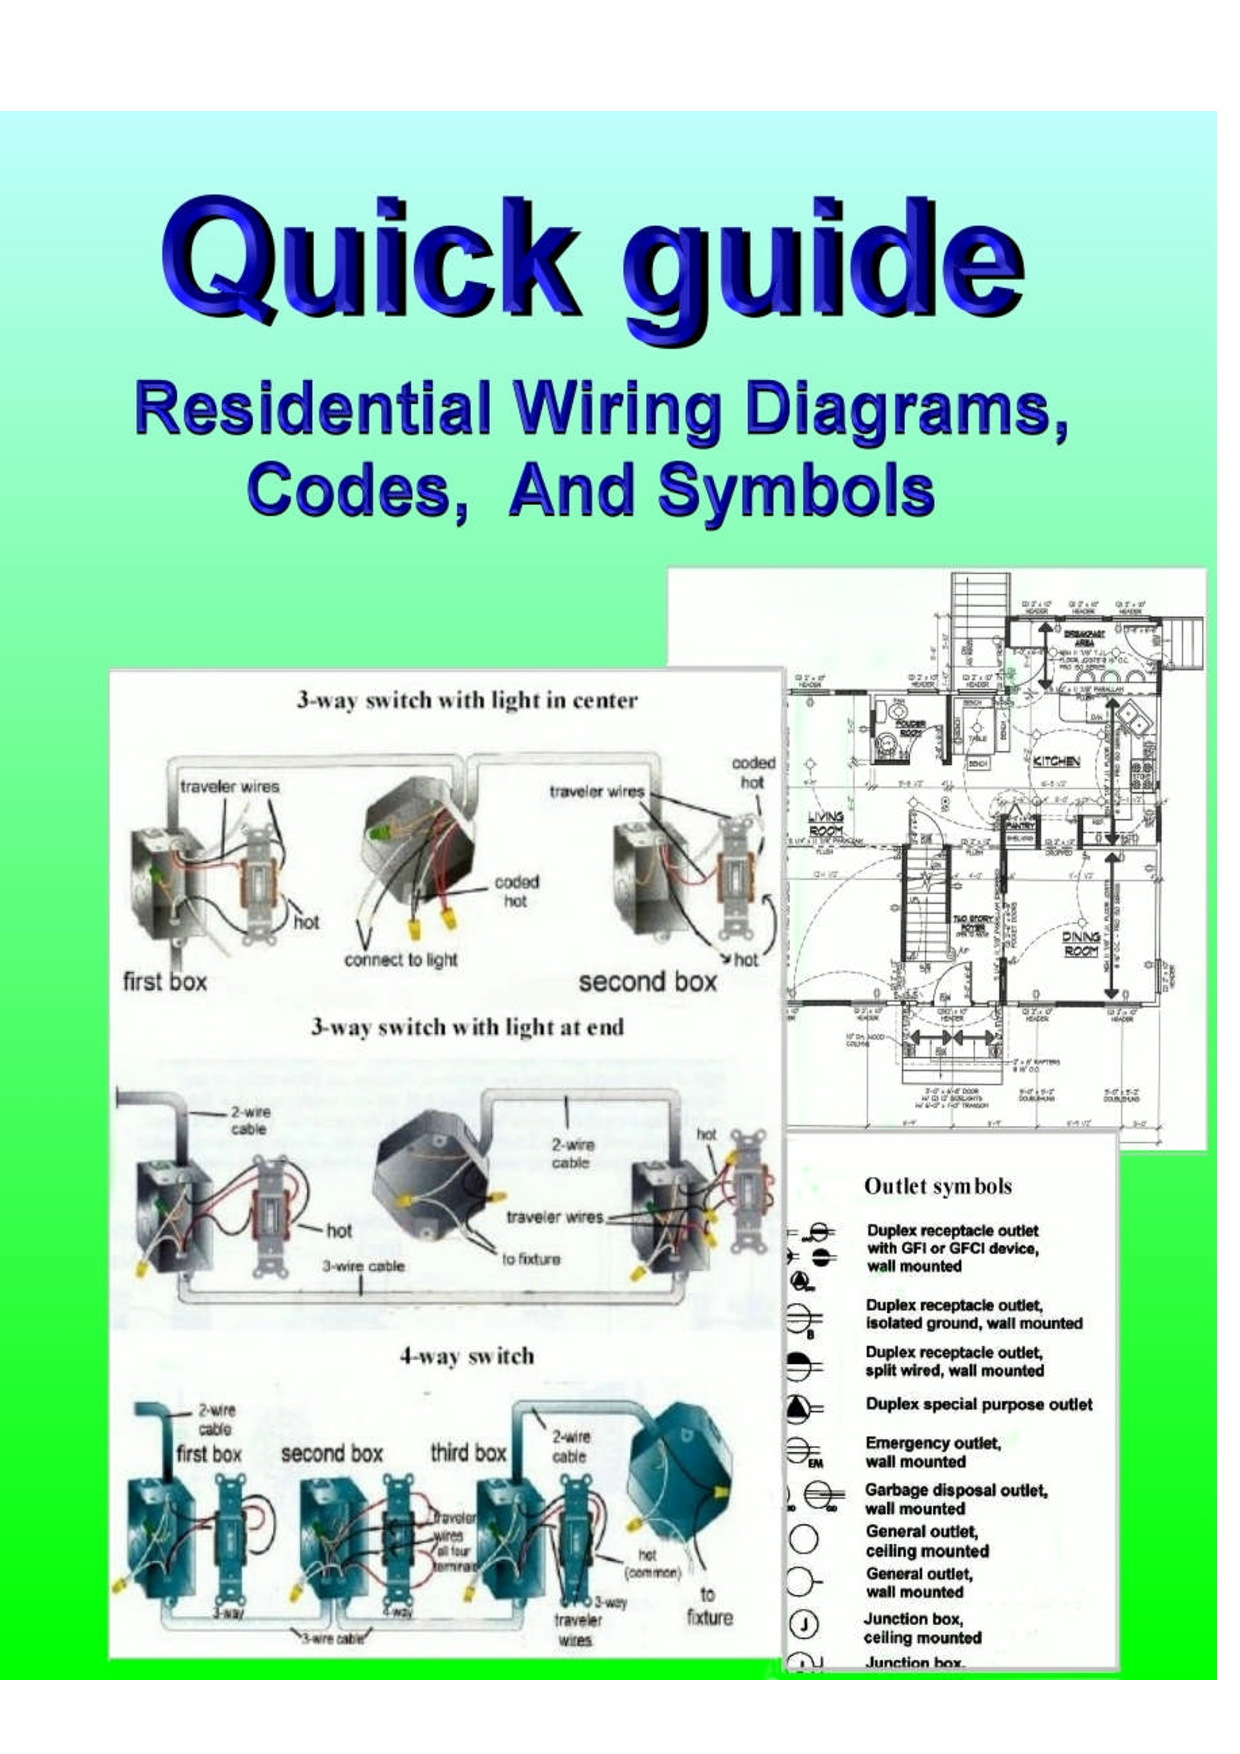 home electrical wiring diagrams pdf download legal documents 39 rh pinterest com electrical house wiring guide household electrical wiring guide